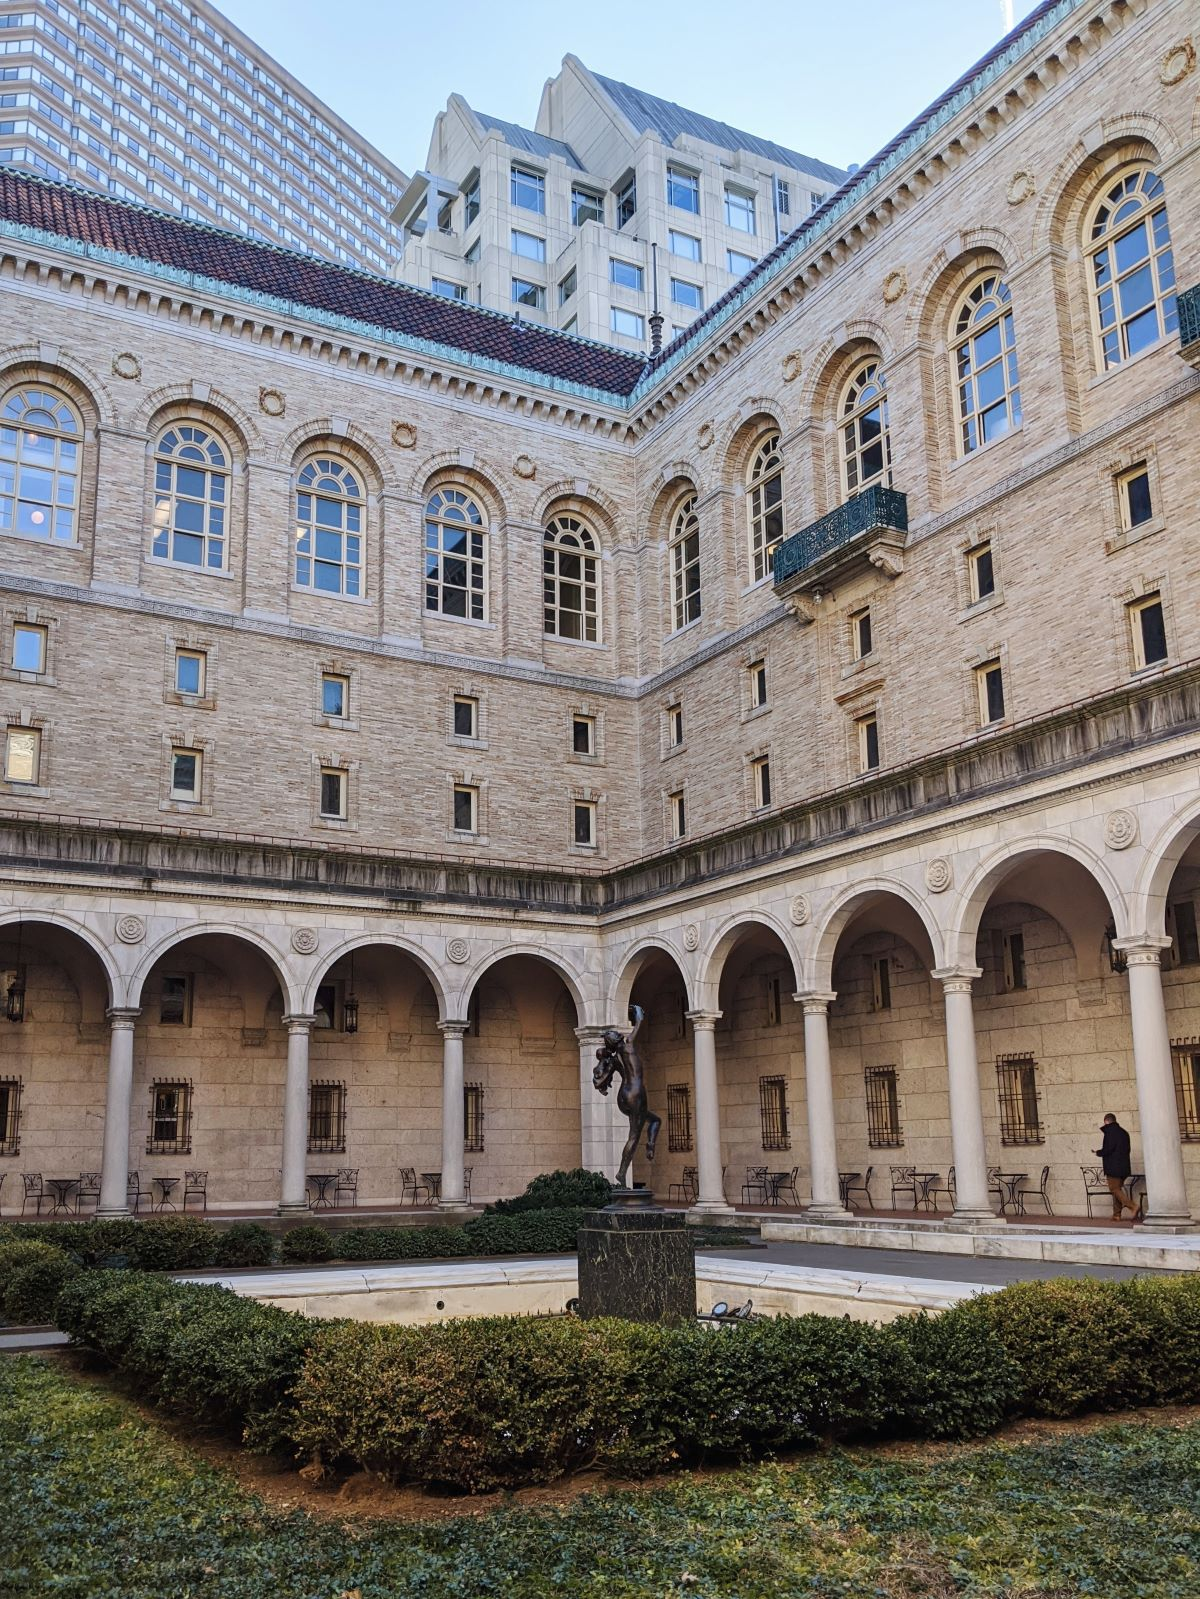 Boston public library courtyard with skyscrapers in the background